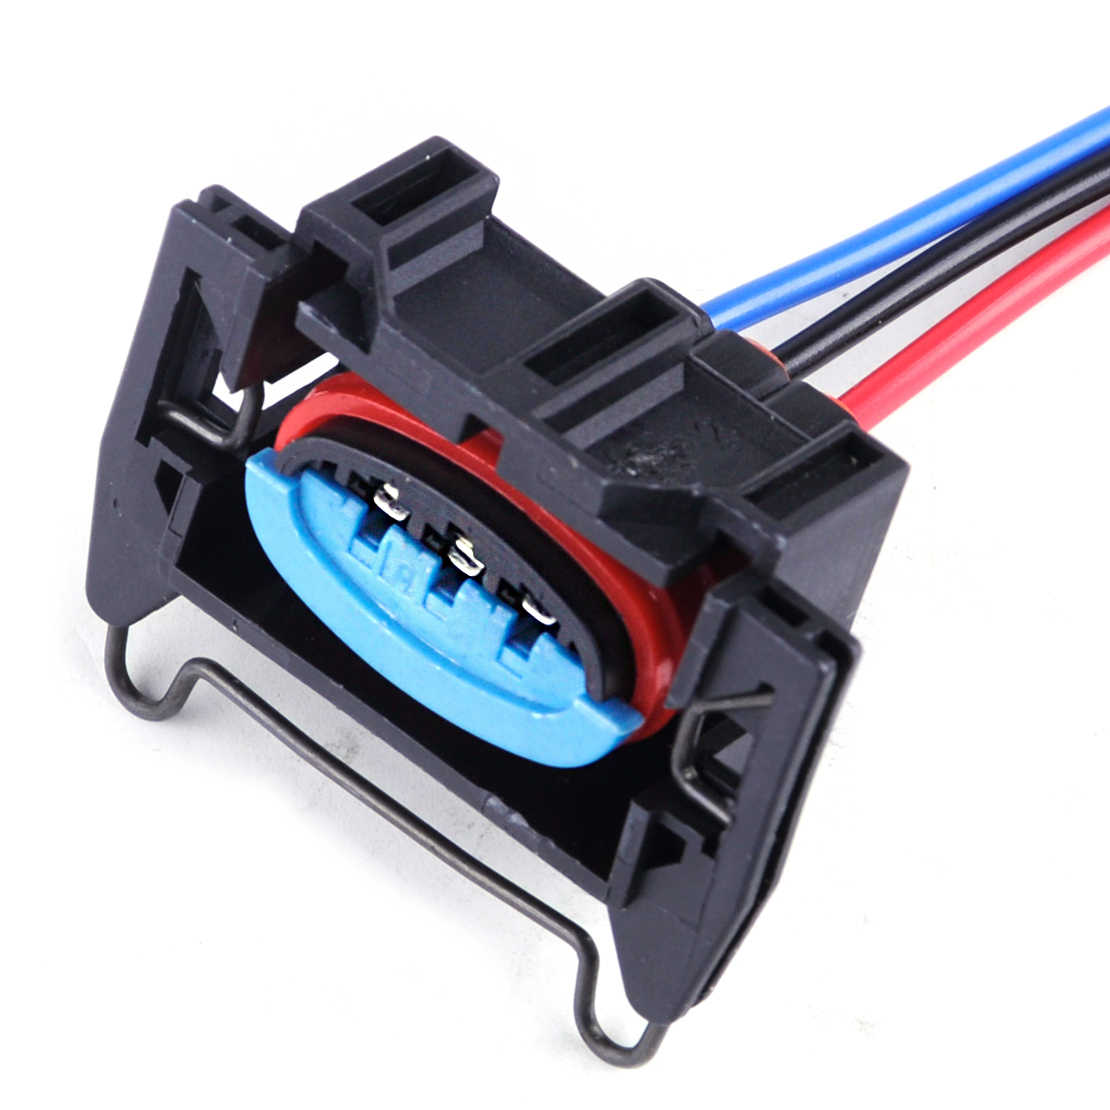 small resolution of  beler ignition coil pack wiring harness connector fit for ford mazda 645 302 3u2z14s411tna 1p1727